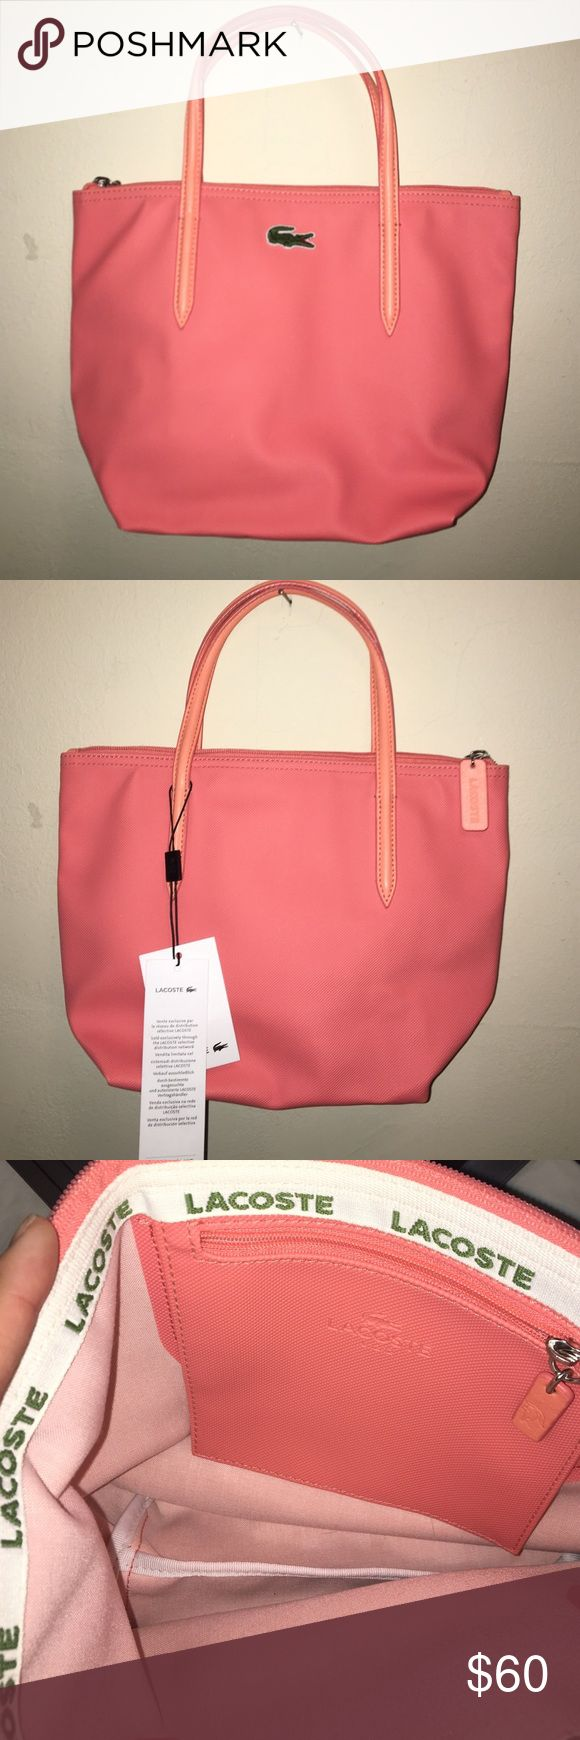 ✨ NEW ✨ Lacoste Tote Bag Concept zip tote bag in fusion coral. The classic L.12.12 small tote features a minimalist style that looks chic no matter where you go. Inspired by our iconic polo shirts, this bag features a petit piqué type texture.  Bright colors Top zip closure 1 interior zip pocket Dimensions: 24.5 x 25 x 14 cm Lacoste Bags Totes